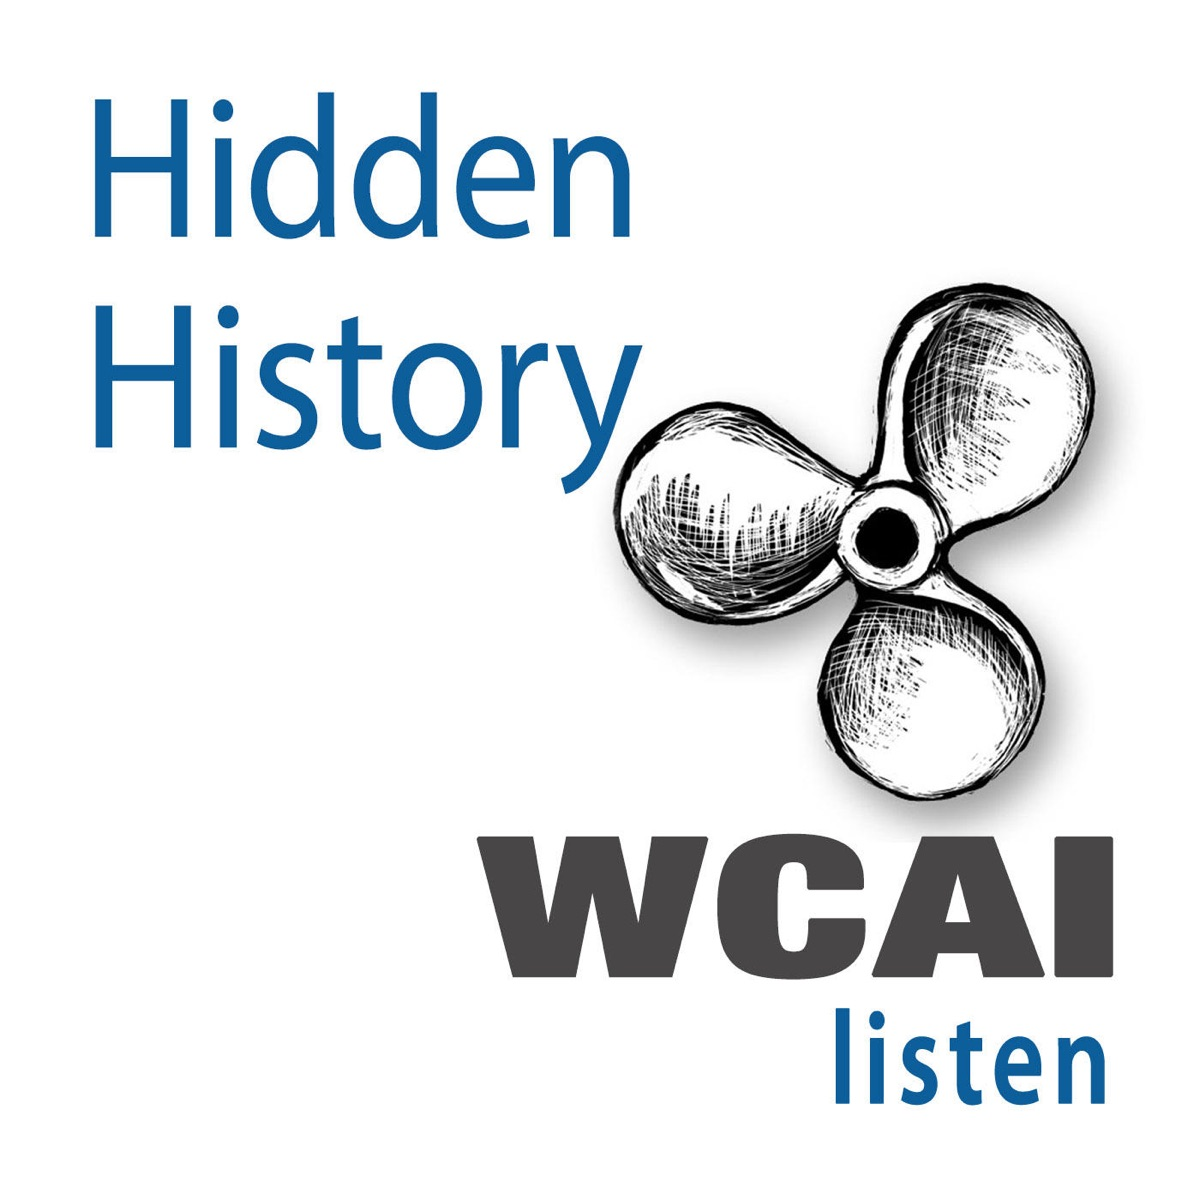 Hidden History on WCAI